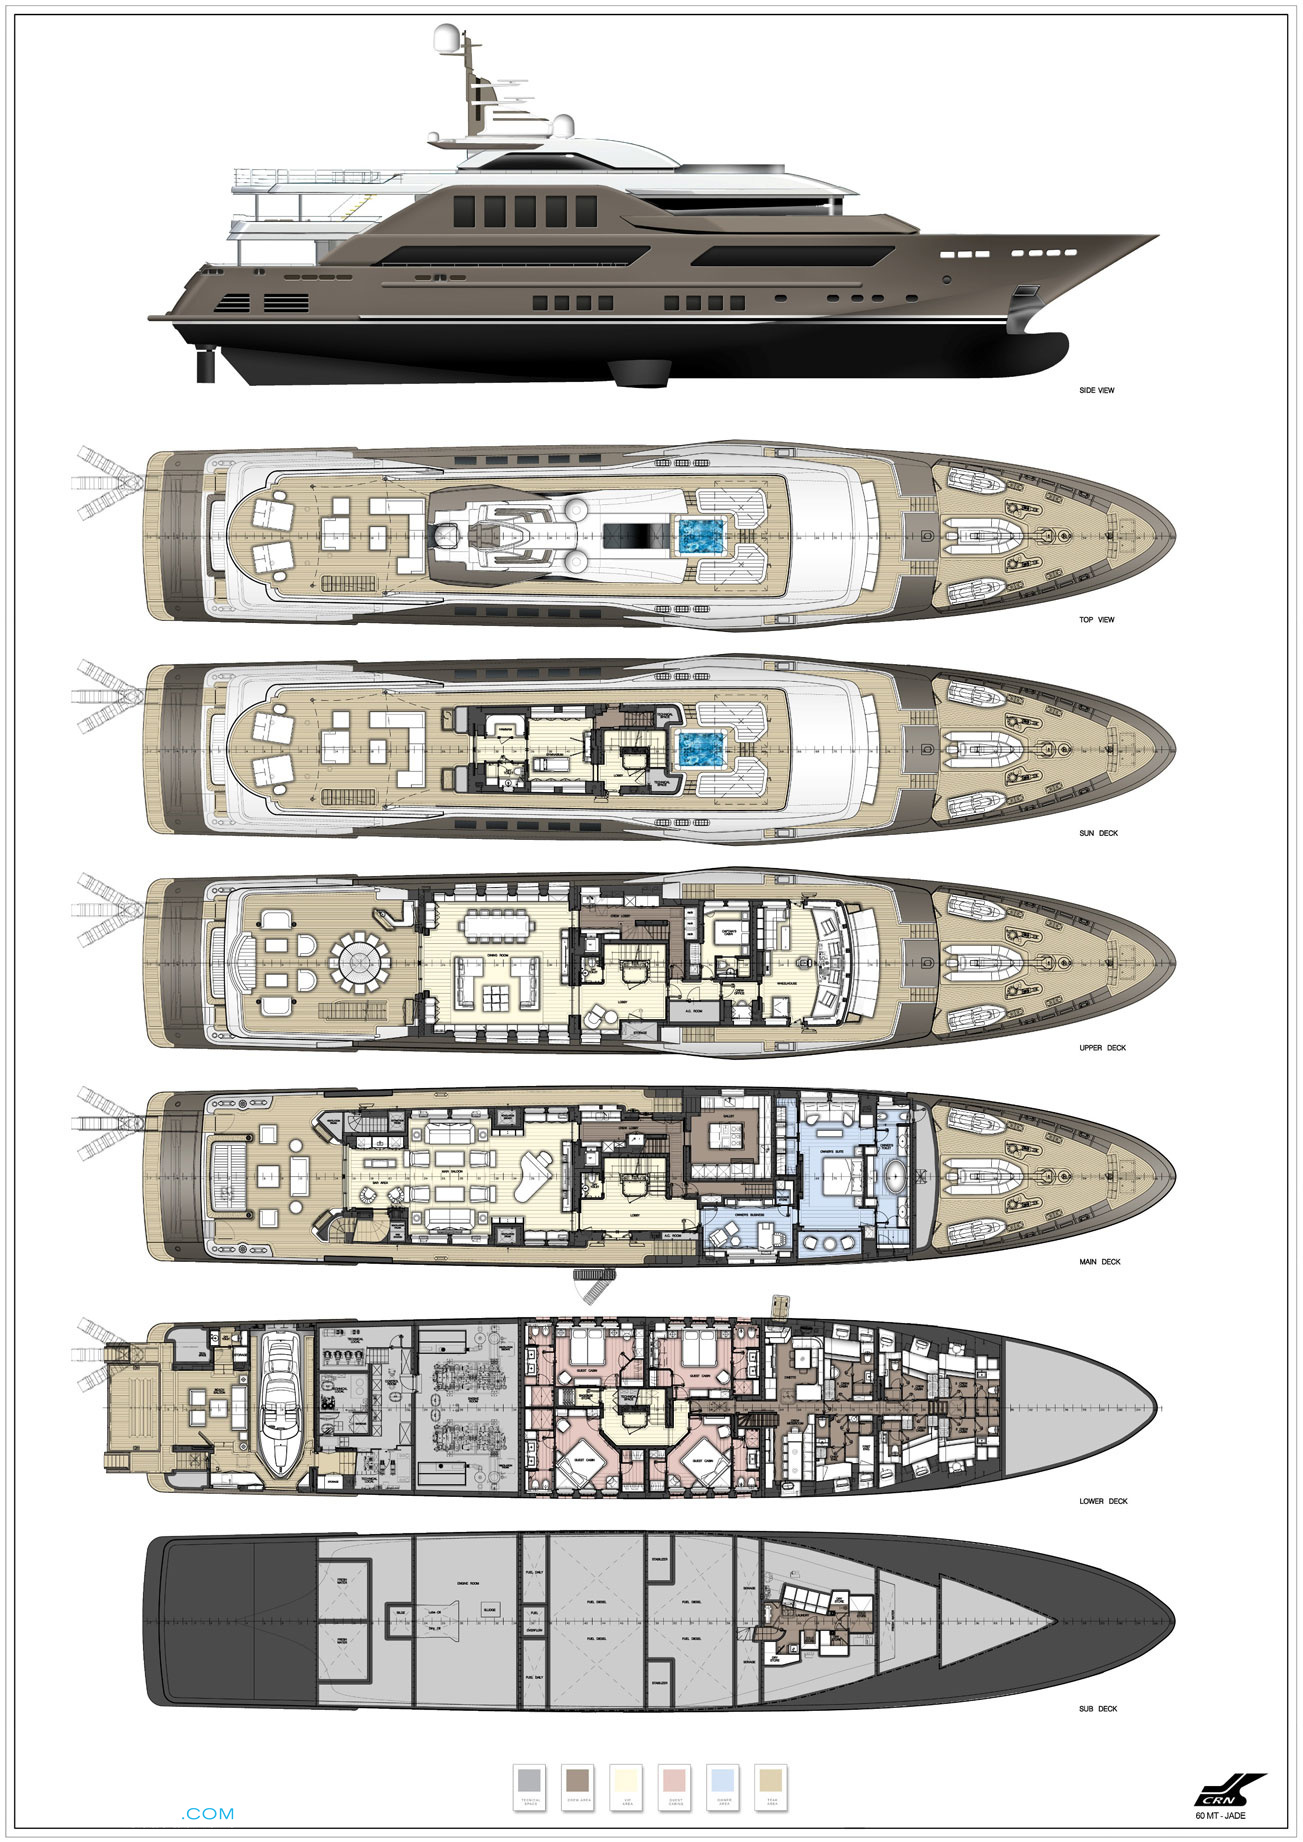 J'Ade Layout - CRN Motor Yacht | superyachts.com